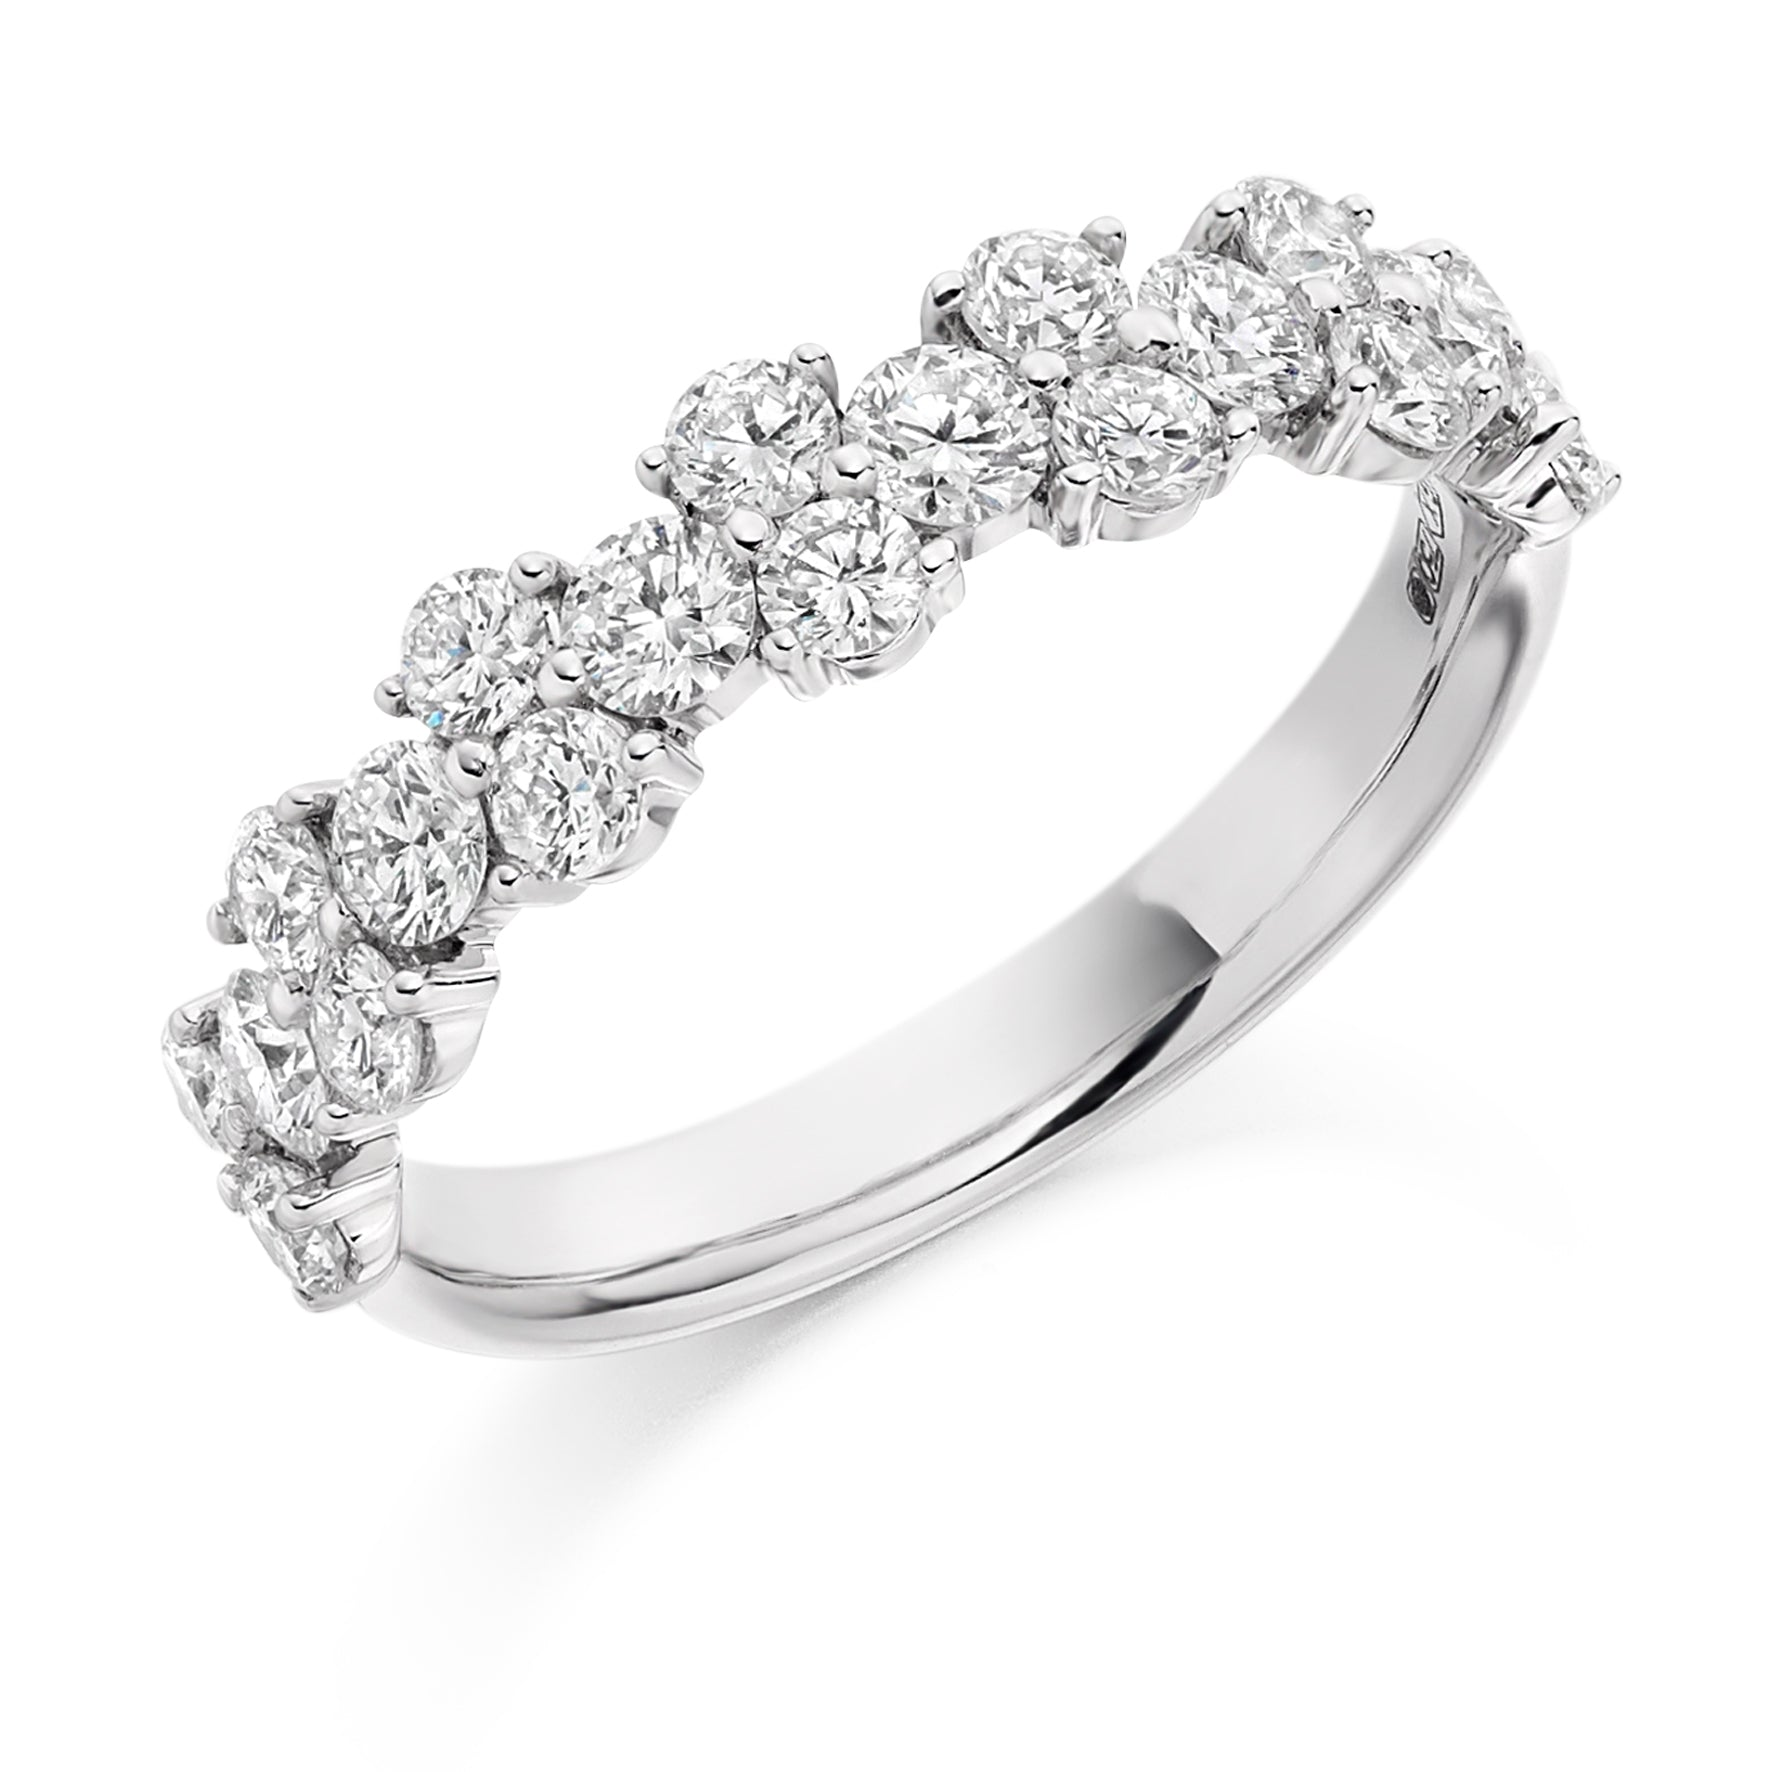 1.2ct Round Brilliant Cut Diamonds Cluster Wedding Ring - (Home Try-On)